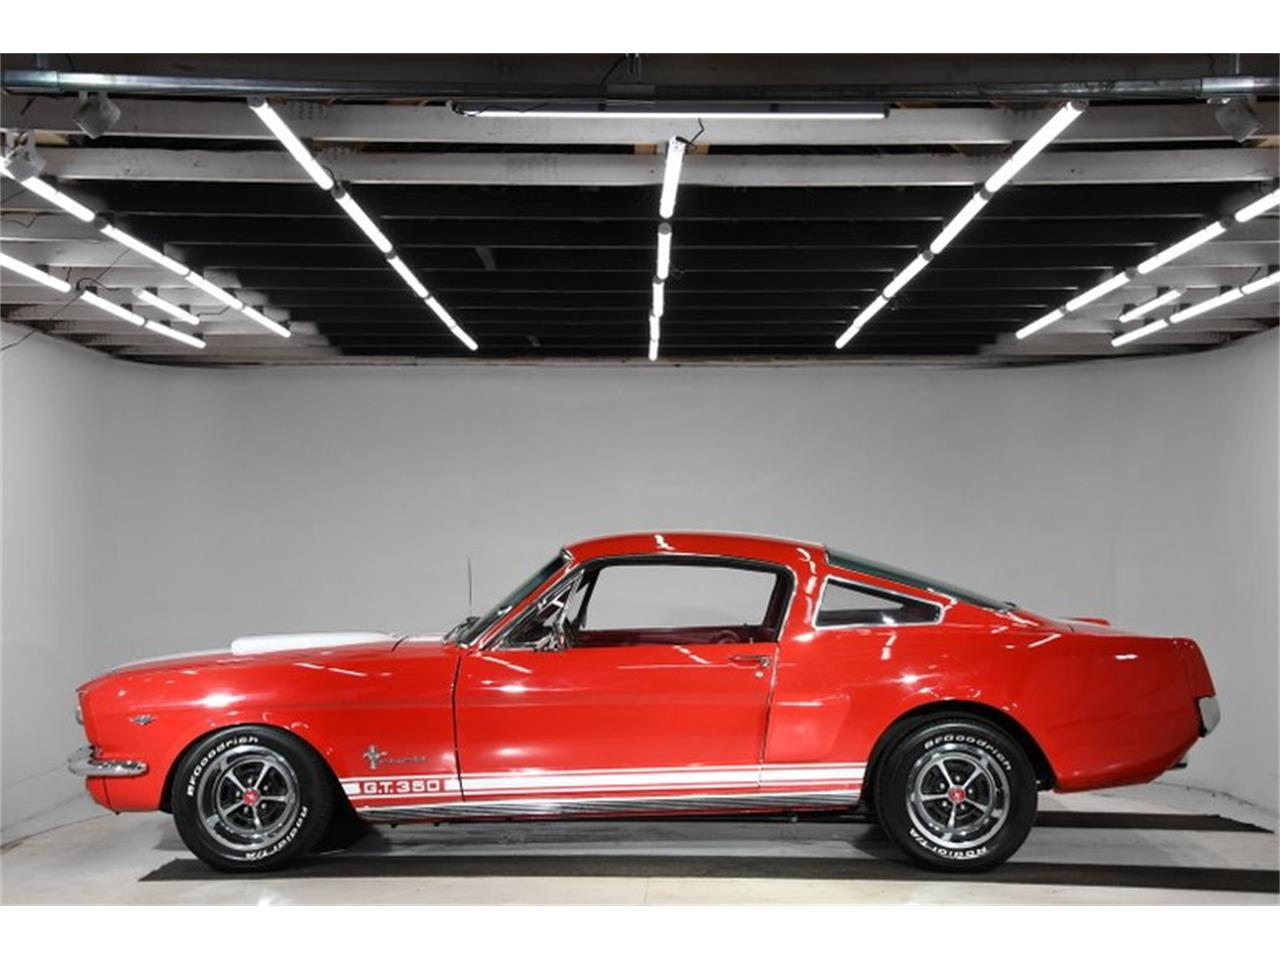 Large Picture of '66 Ford Mustang located in Illinois - $37,998.00 - Q40M